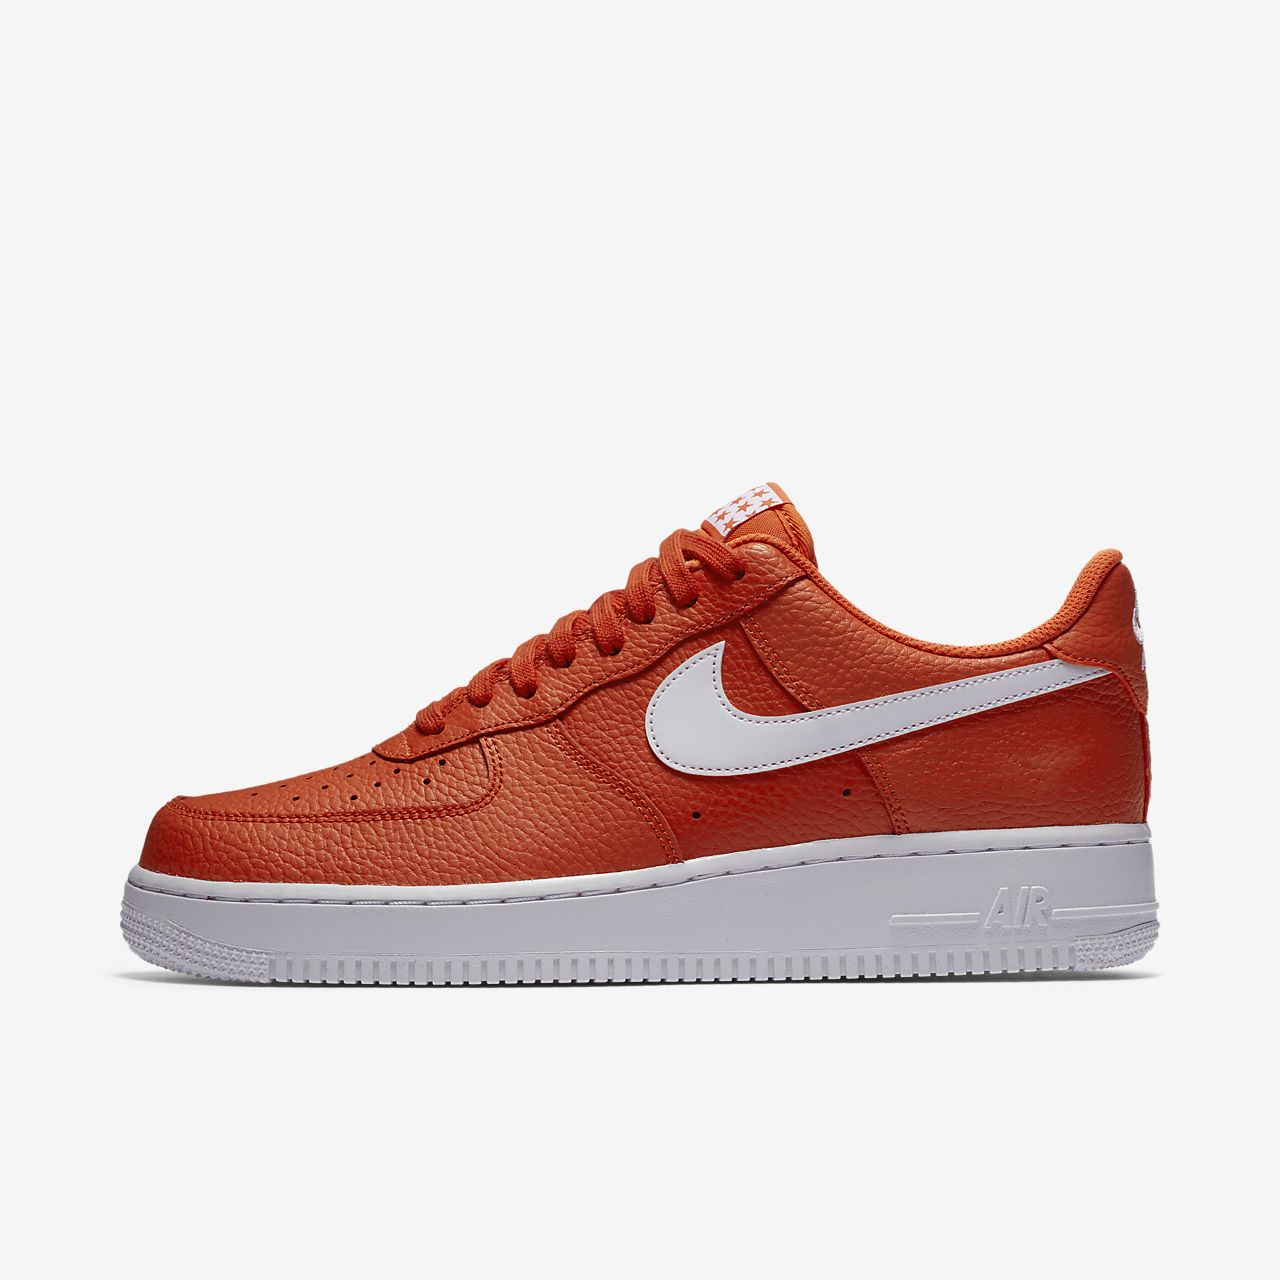 brand new 02207 daad3 official store mennns nike air force 1 oransje rød 86c5a 5461c